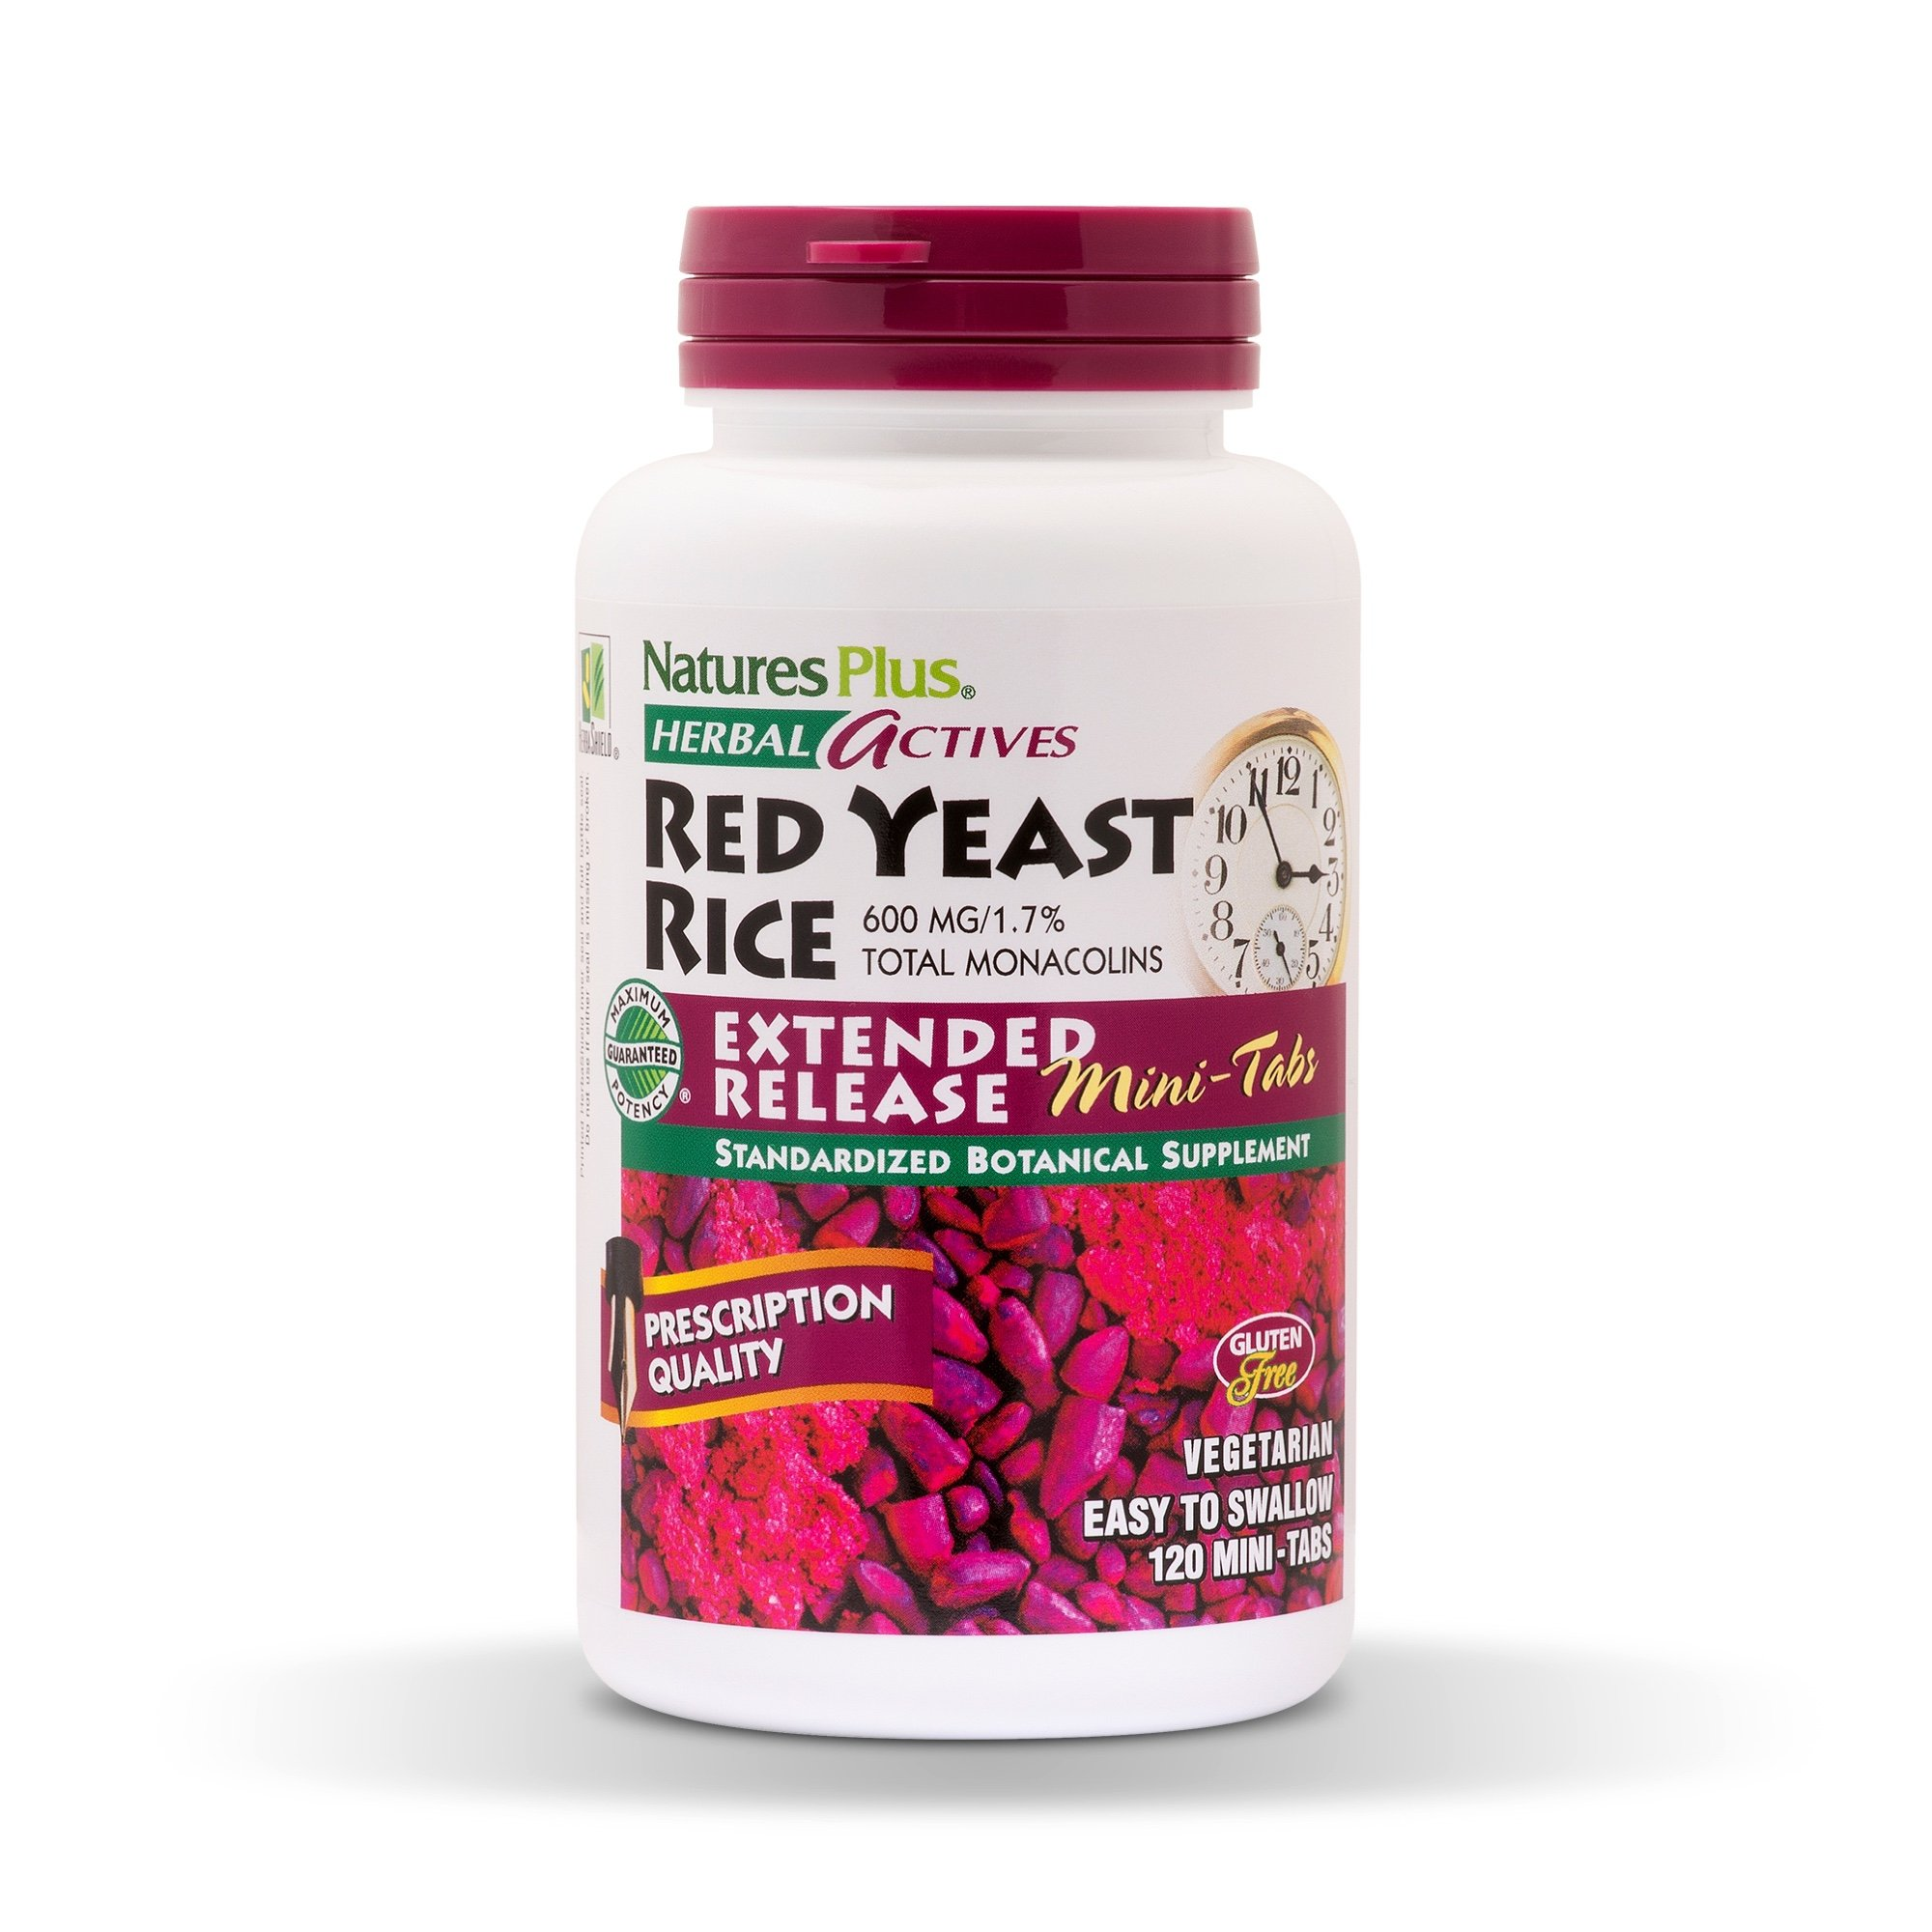 Natures Plus Herbal Actives Red Yeast Rice (2 Pack) - 600mg, 1.7% Monacolins - 120 Mini Tablets, Extended Release - Cholesterol Support - Vegan, Vegetarian, Gluten Free - 60 Servings